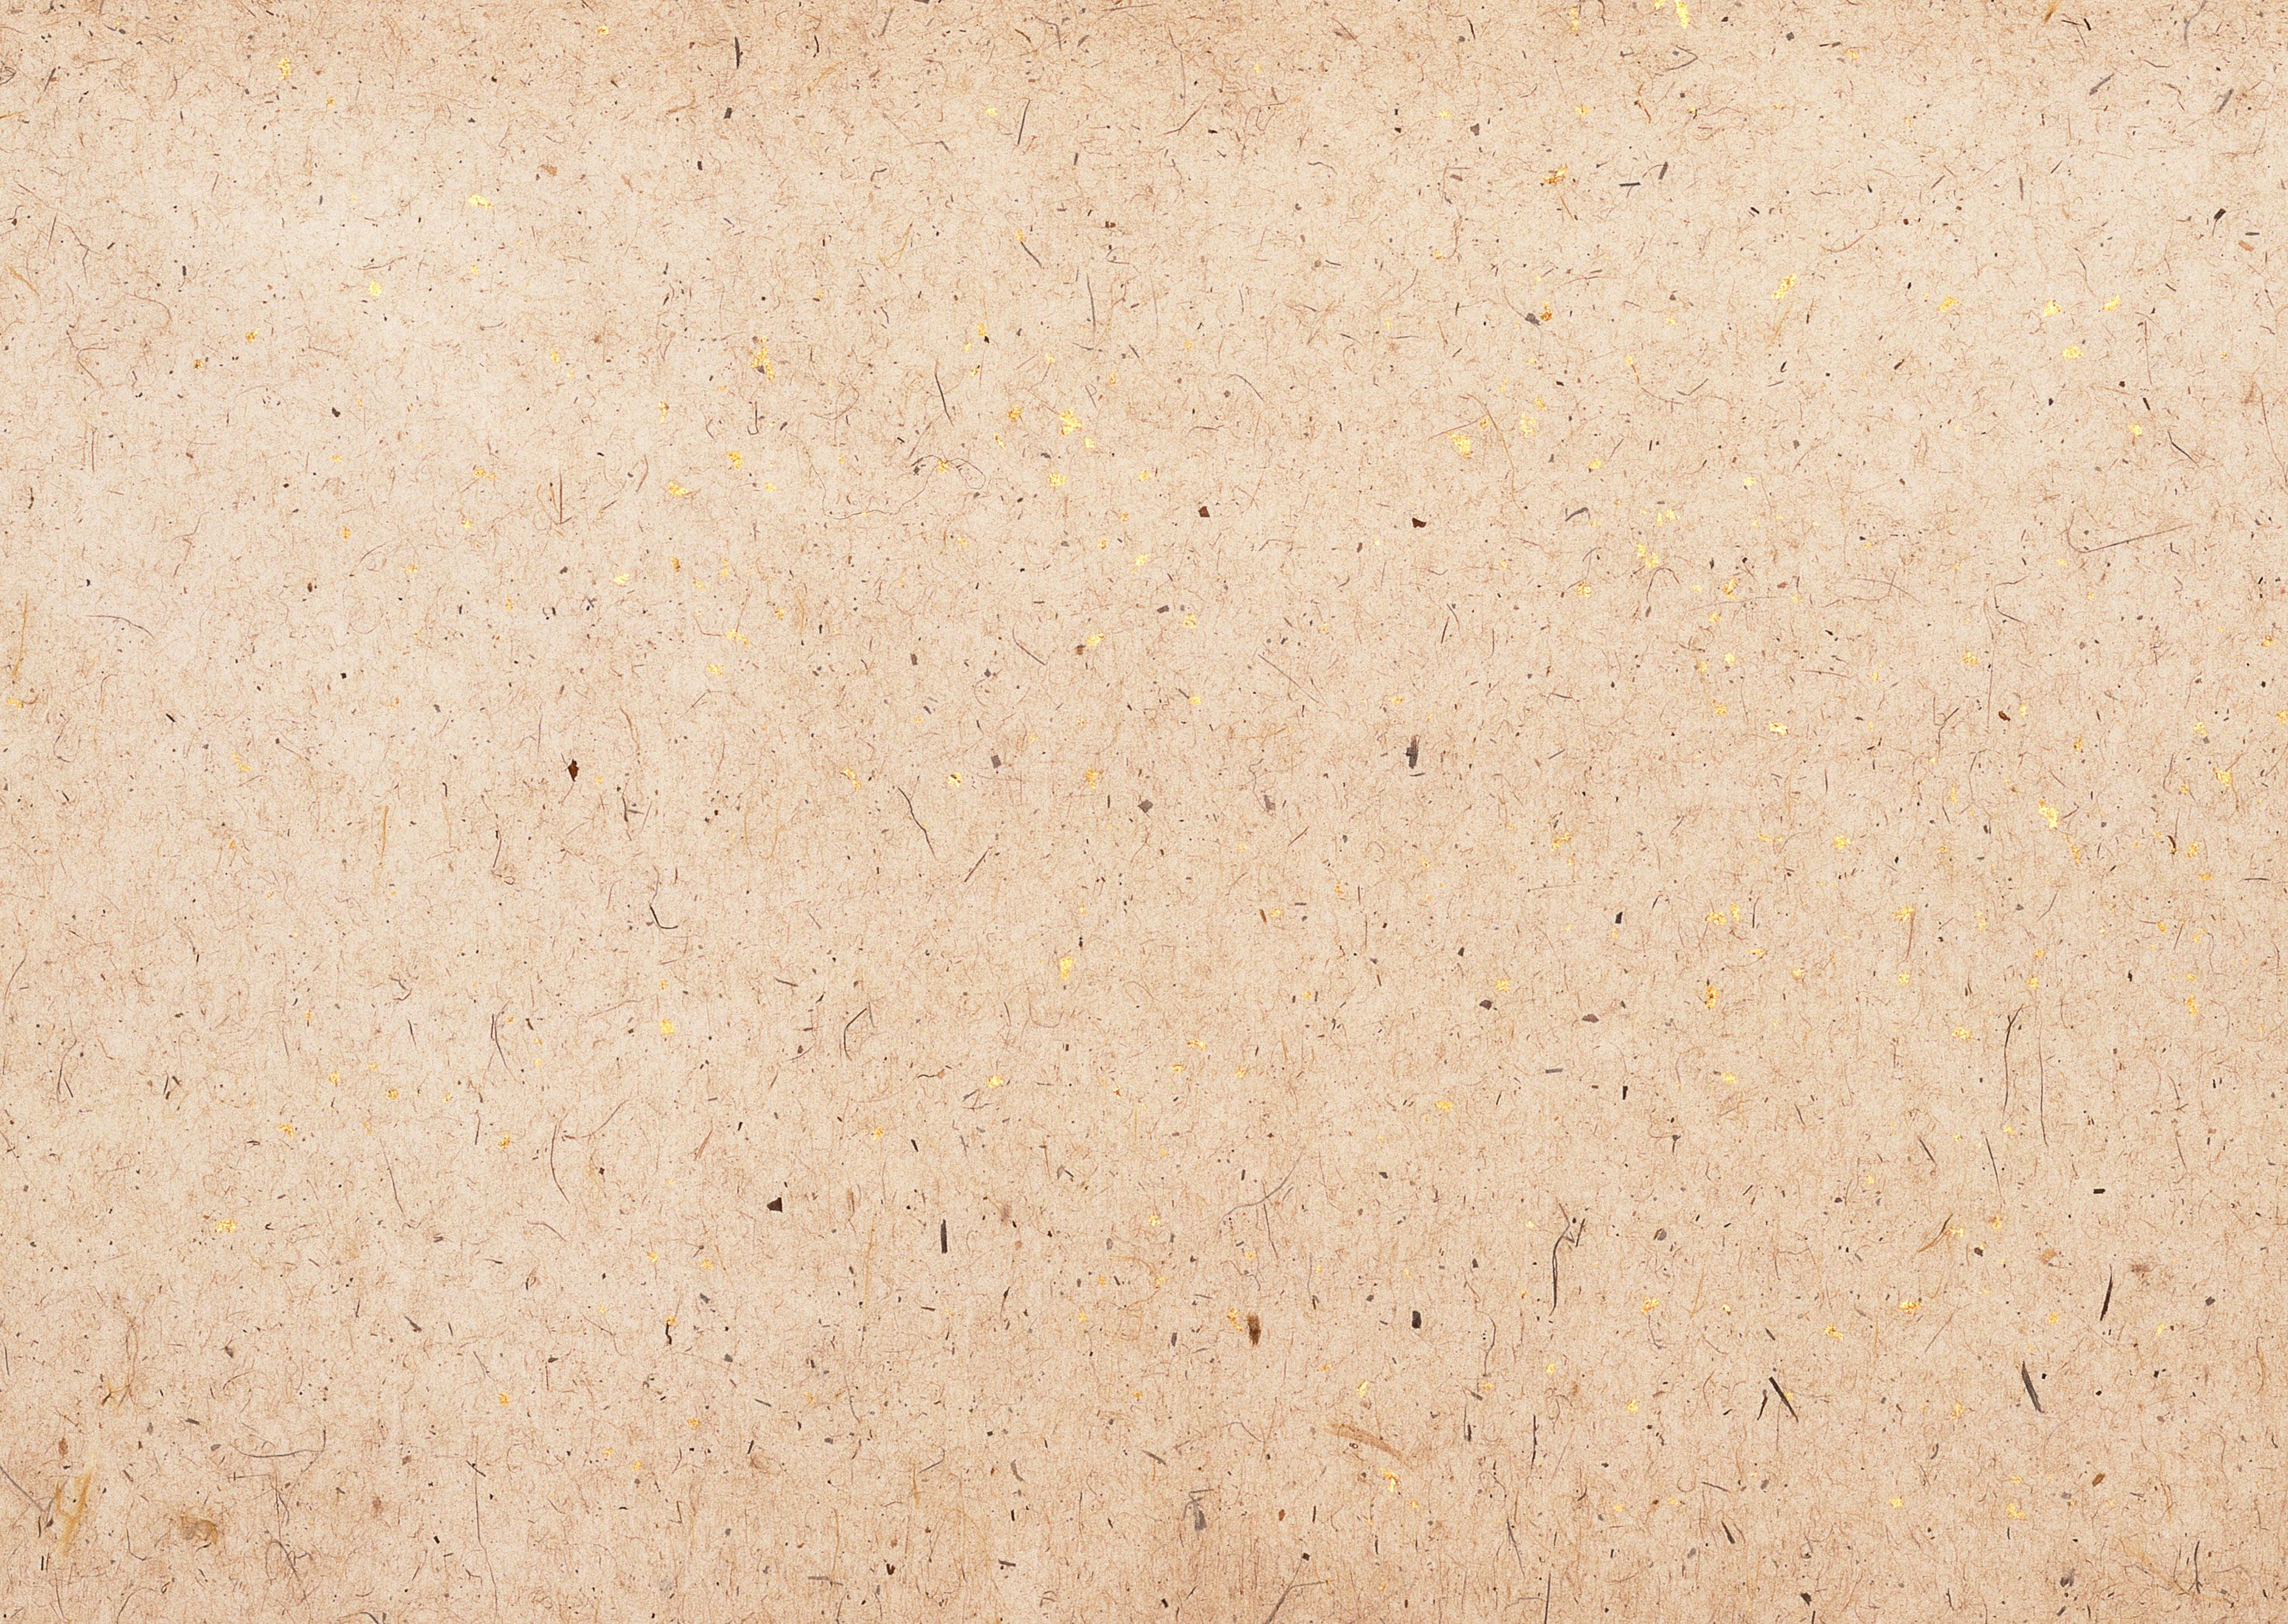 Texture Paper Paper Texture Old Battered Paper Download Photo Image Background Background Old Paper Background Paper Texture Free Paper Texture